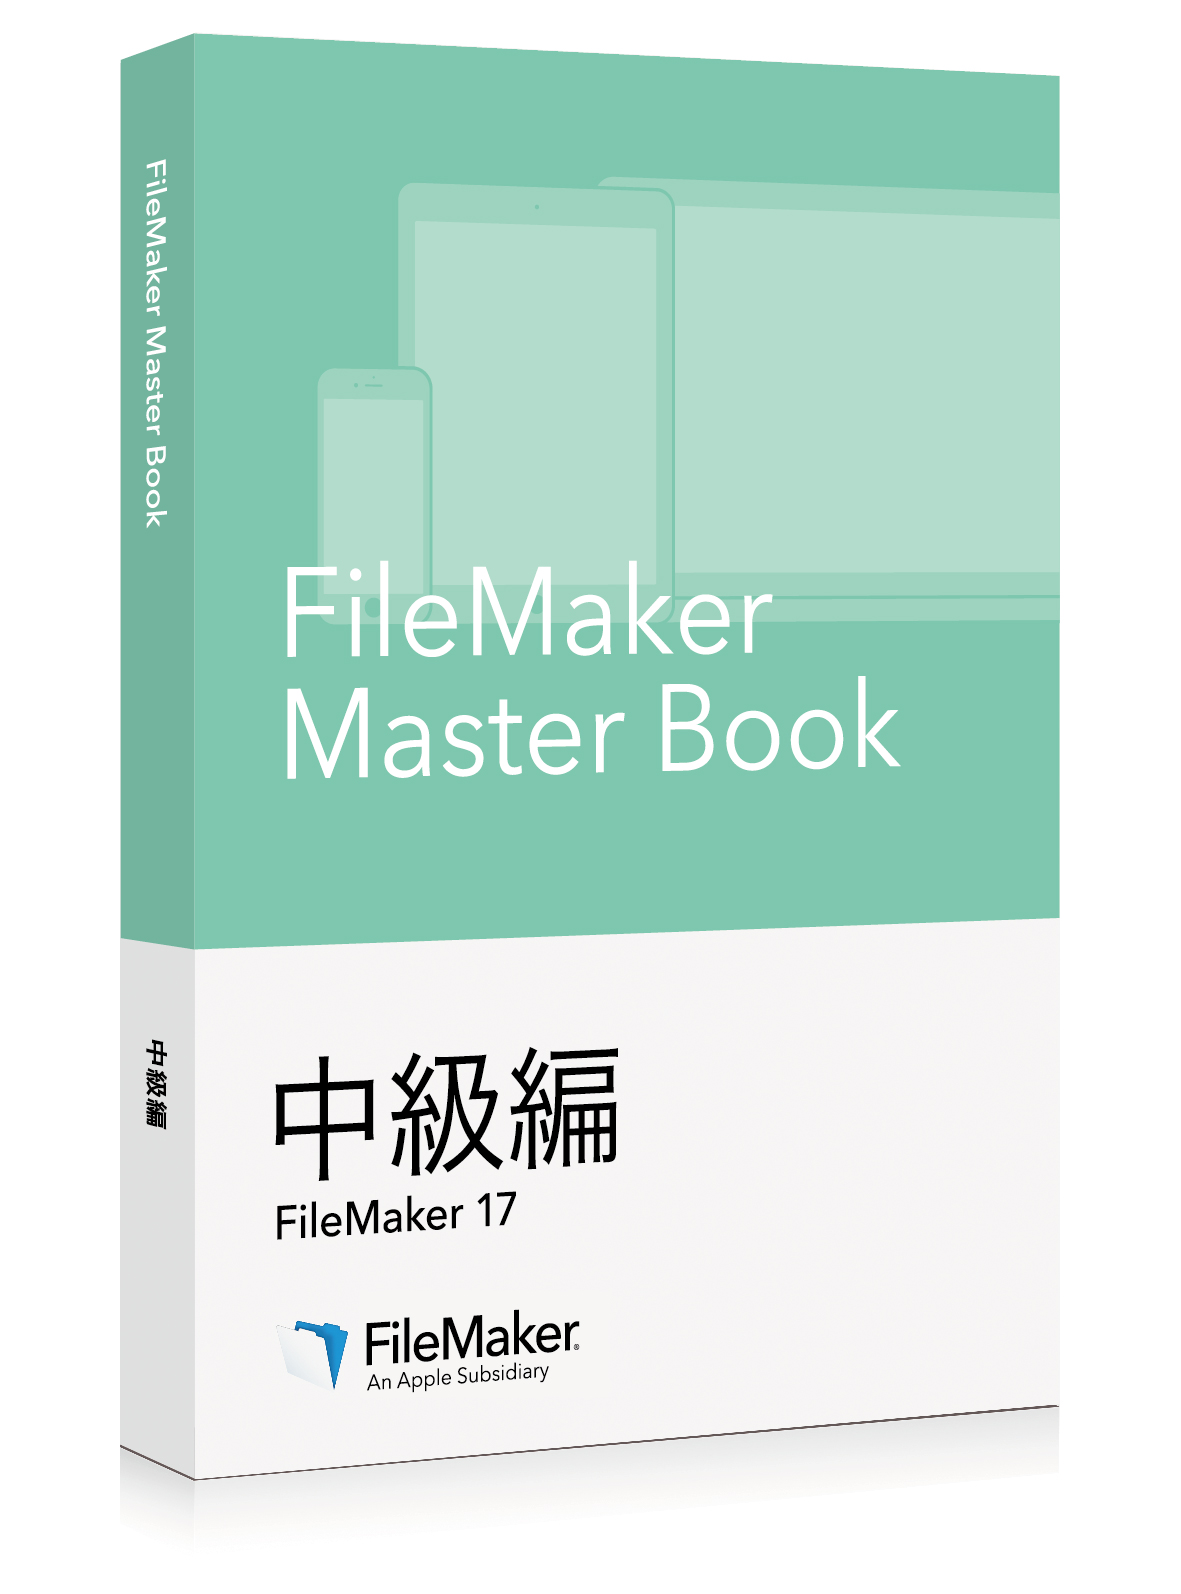 FileMaker Master Book 中級編